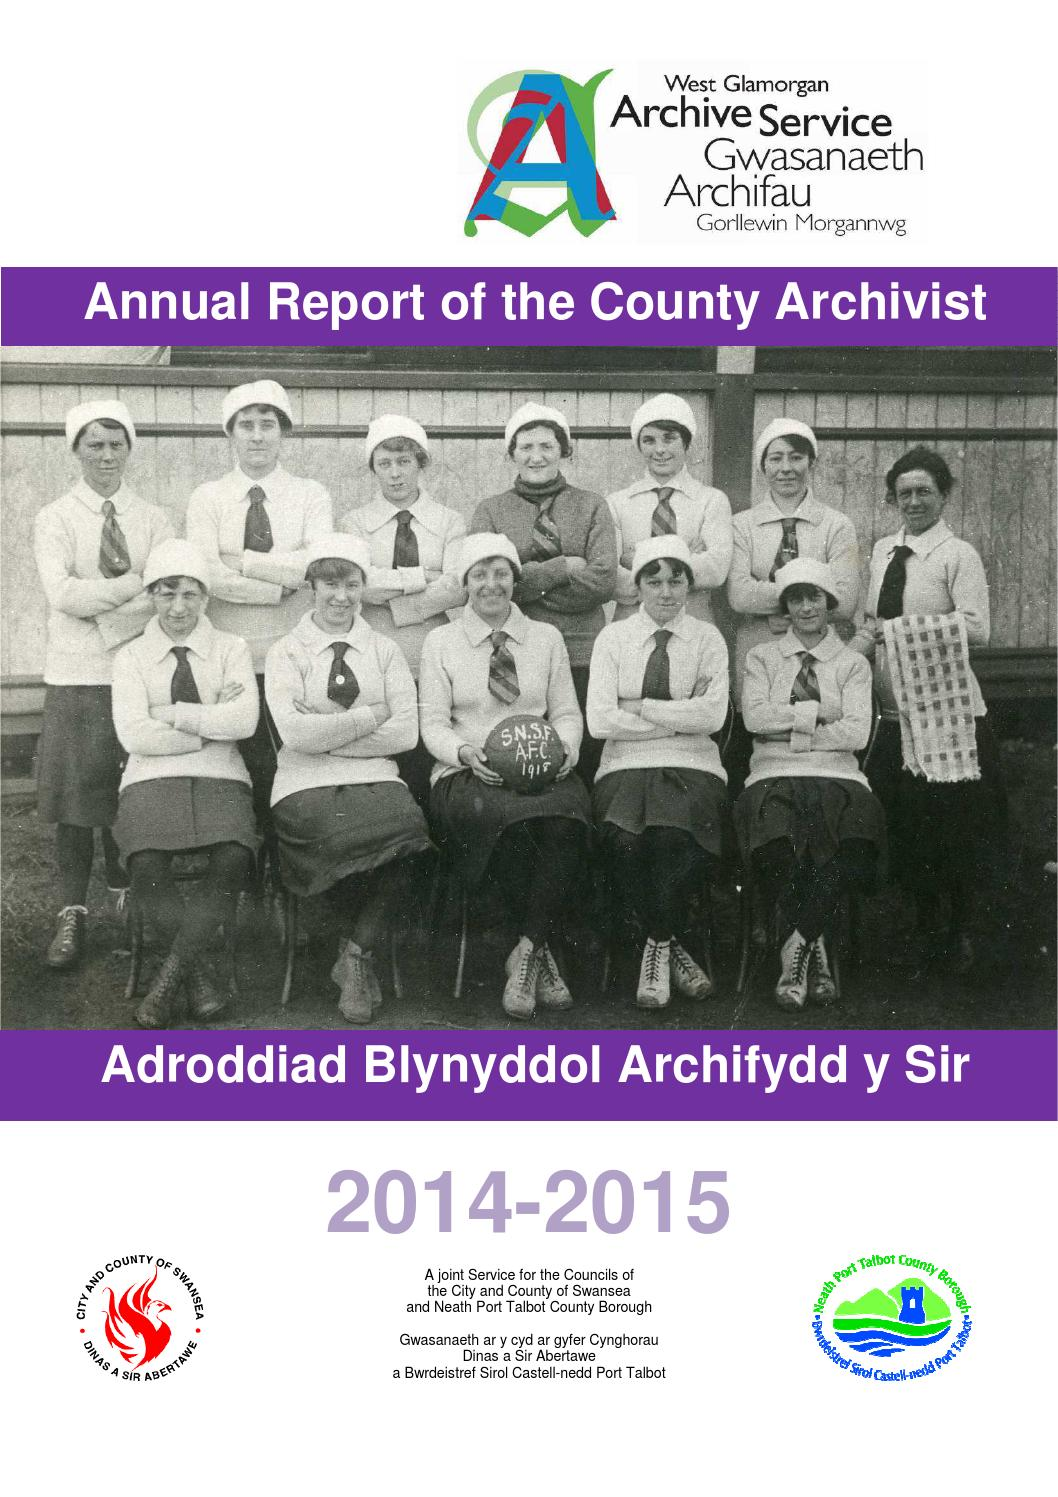 Annual report of the county archivist 2014 2015 by city and county annual report of the county archivist 2014 2015 by city and county of swansea issuu nvjuhfo Images